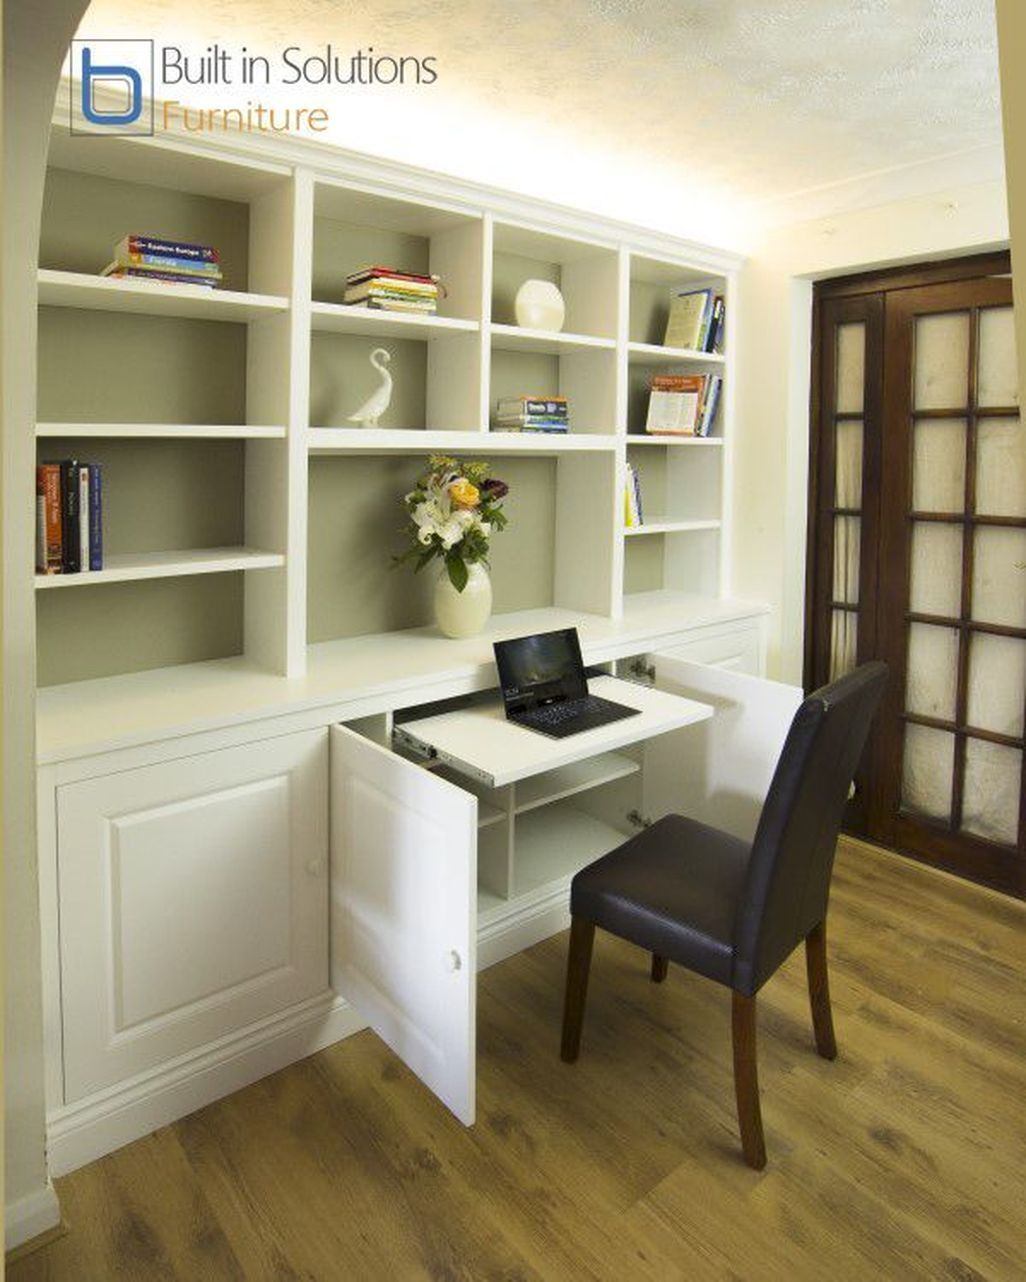 Pin By Cheryl Taverna On El S House Dining Room Furnishings Dining Room Storage Home Office Design